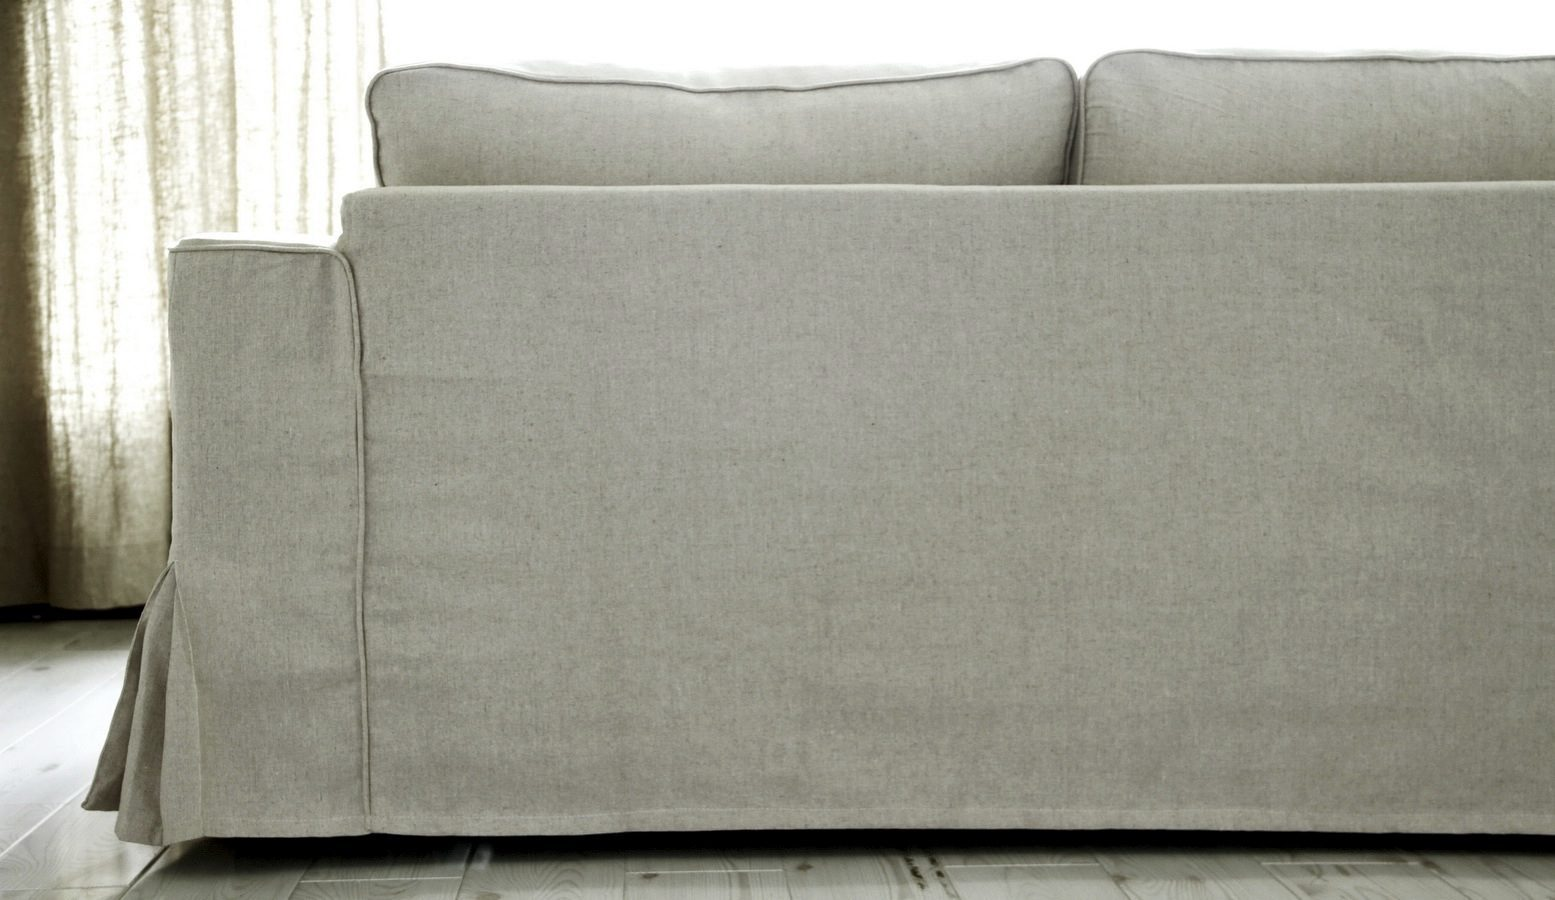 Ikea Sofa Cover Loose Fit Linen Manstad Sofa Slipcovers Now Available